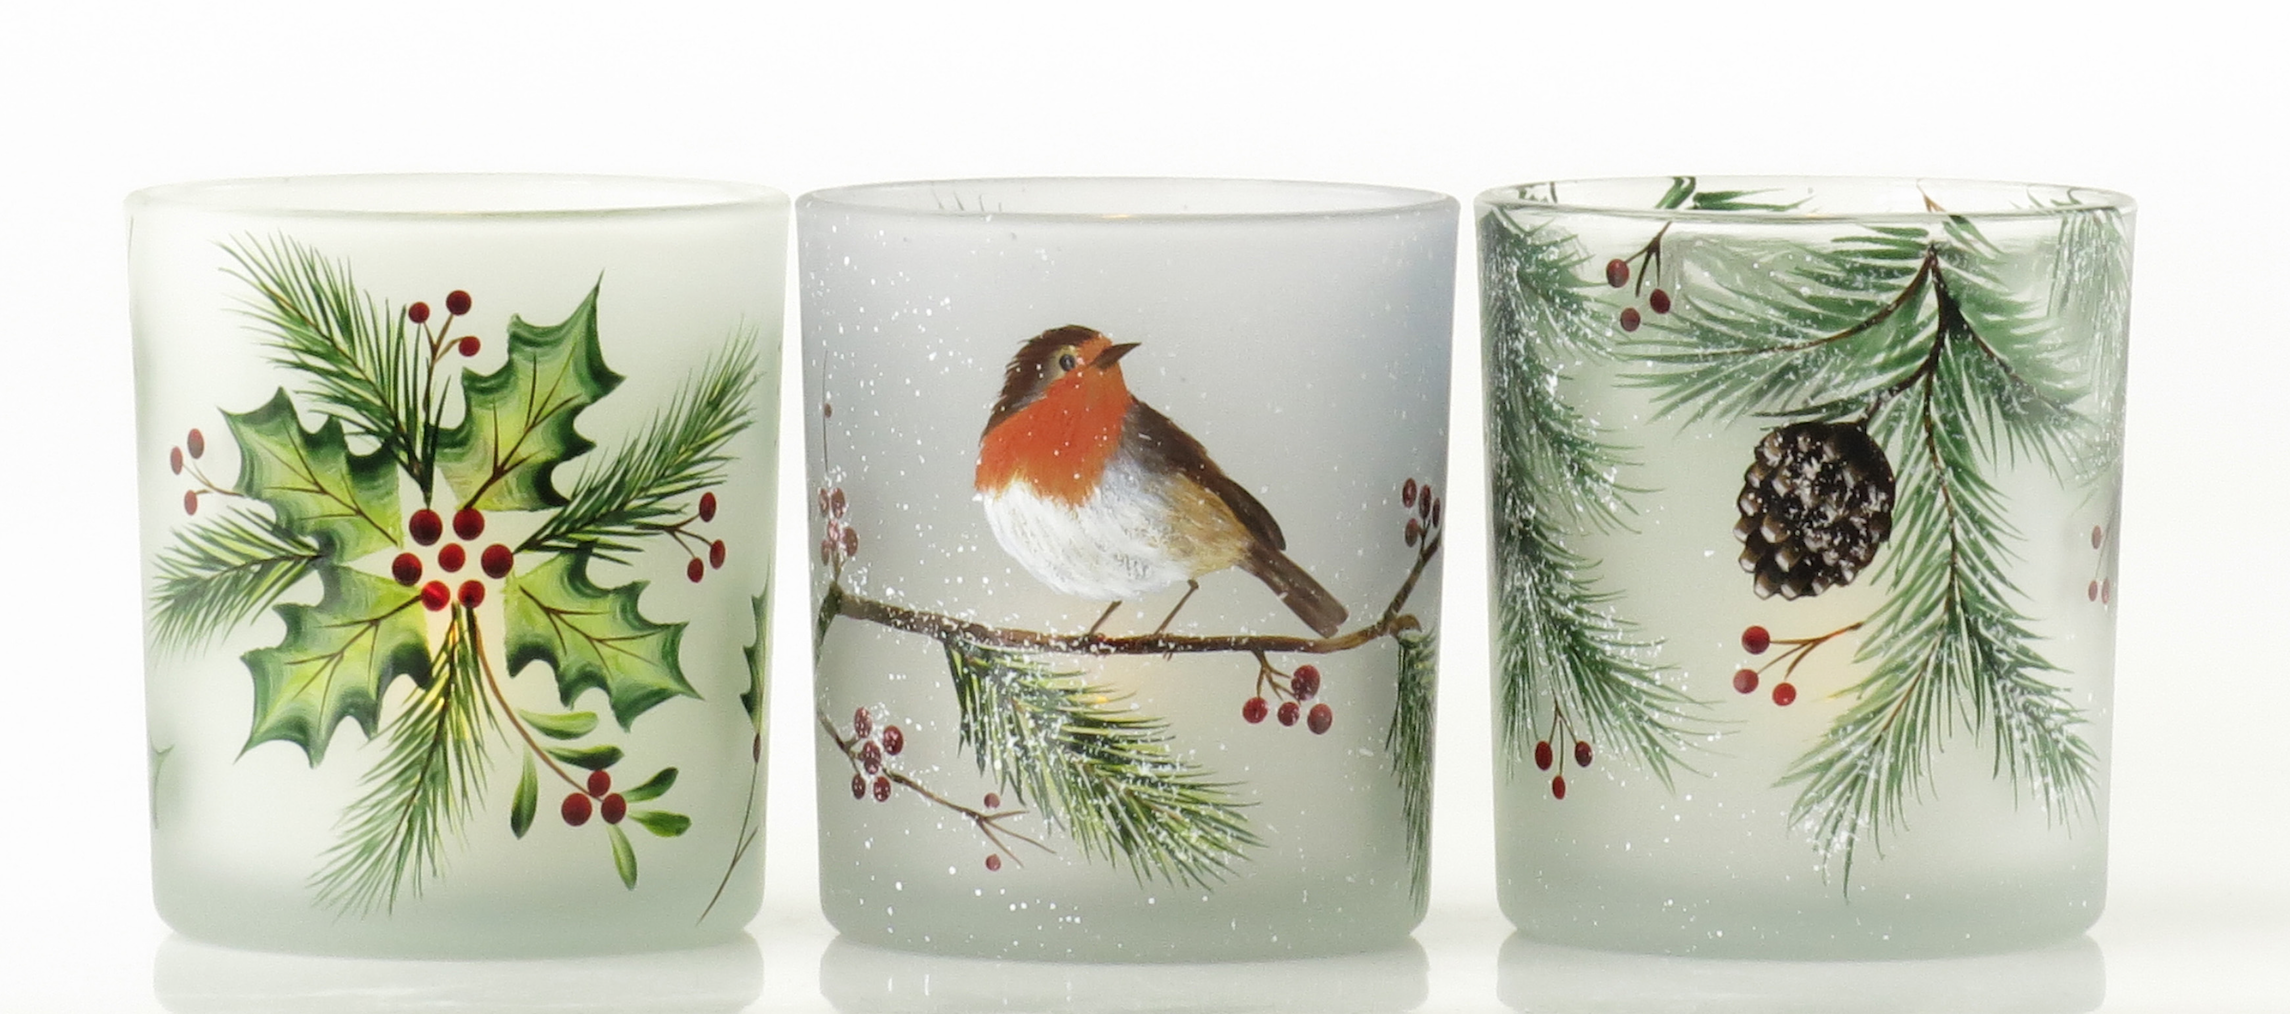 Festive Decorative Glass Cups with LED Tealights